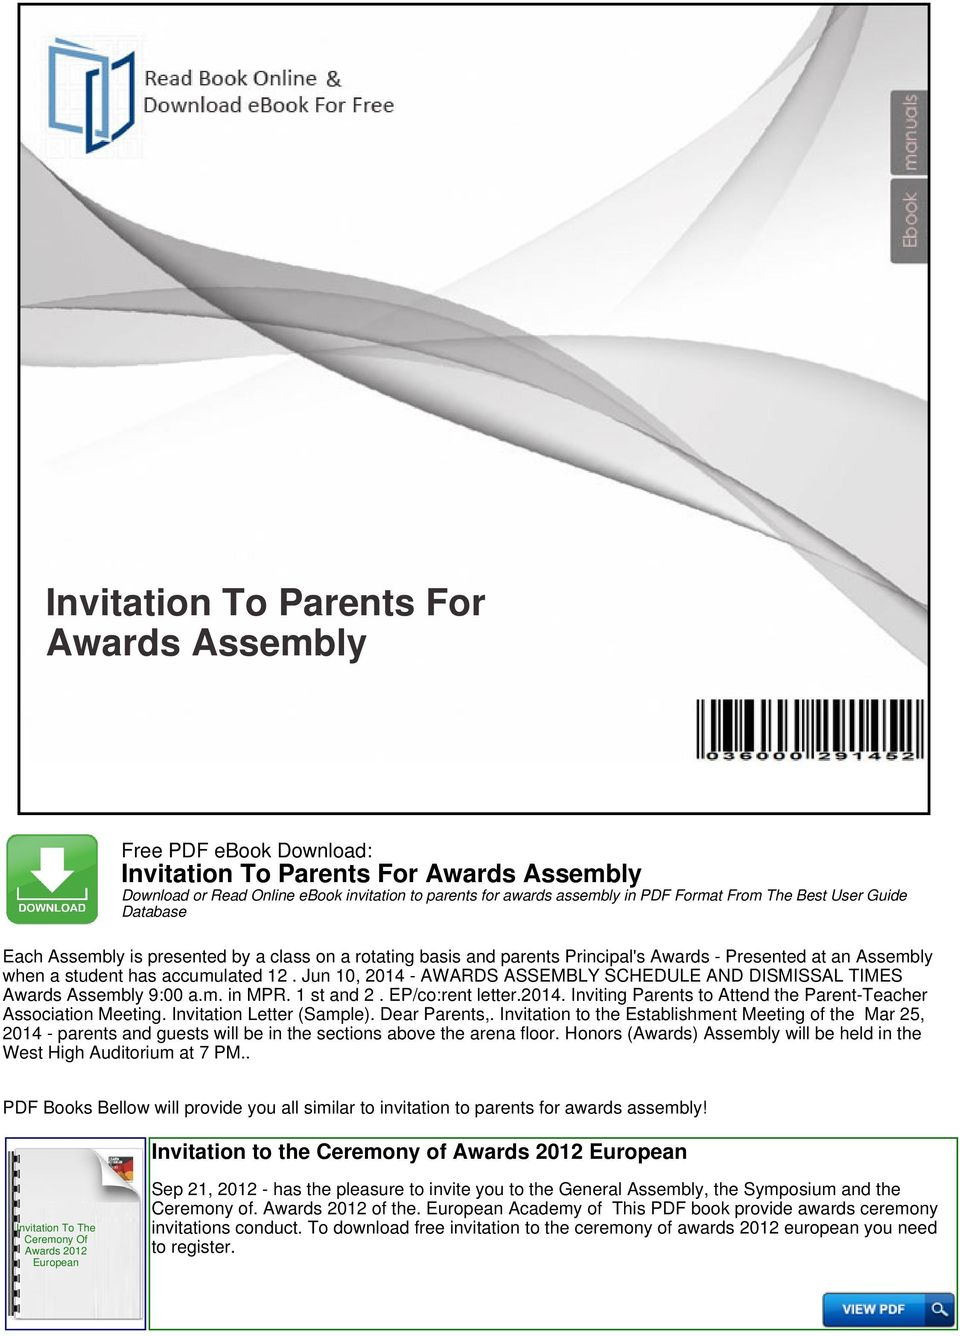 Invitation To Parents For Awards Assembly - PDF